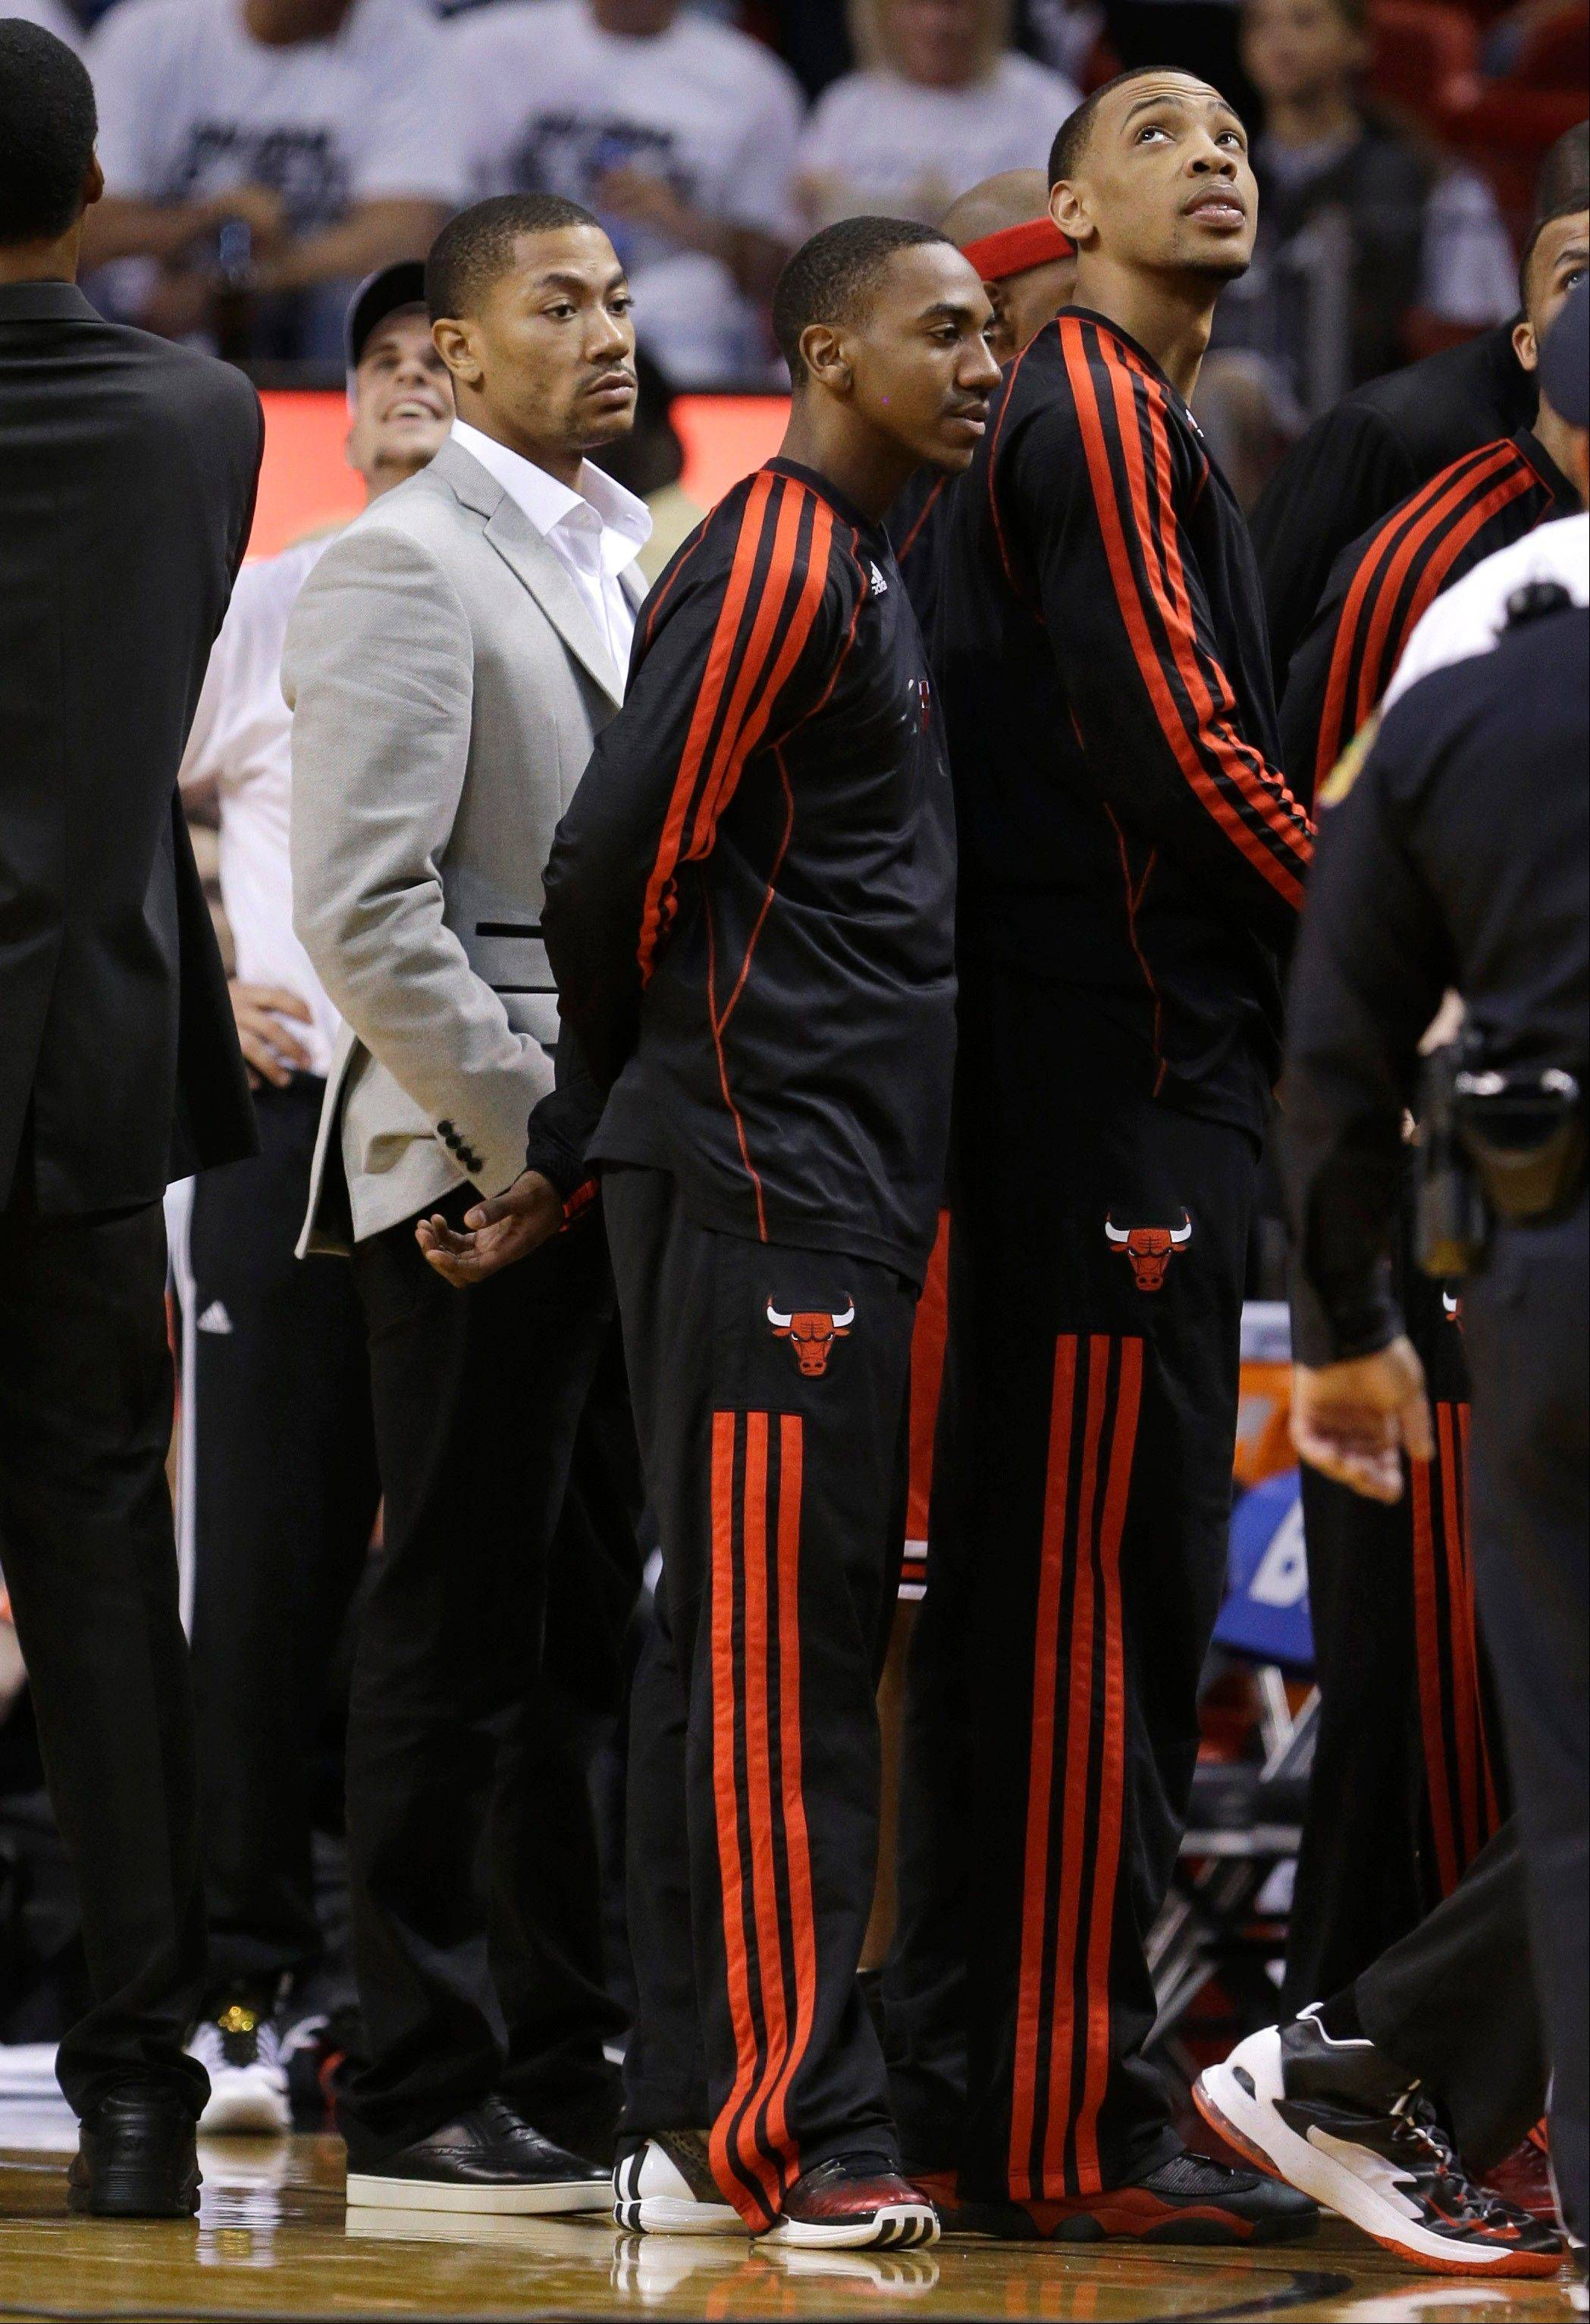 Chicago Bulls' Derrick Rose, left, stands with teammates during the second half of Game 5 of an NBA basketball Eastern Conference semifinal against the Miami Heat on Wednesday, May 15, 2013, in Miami.